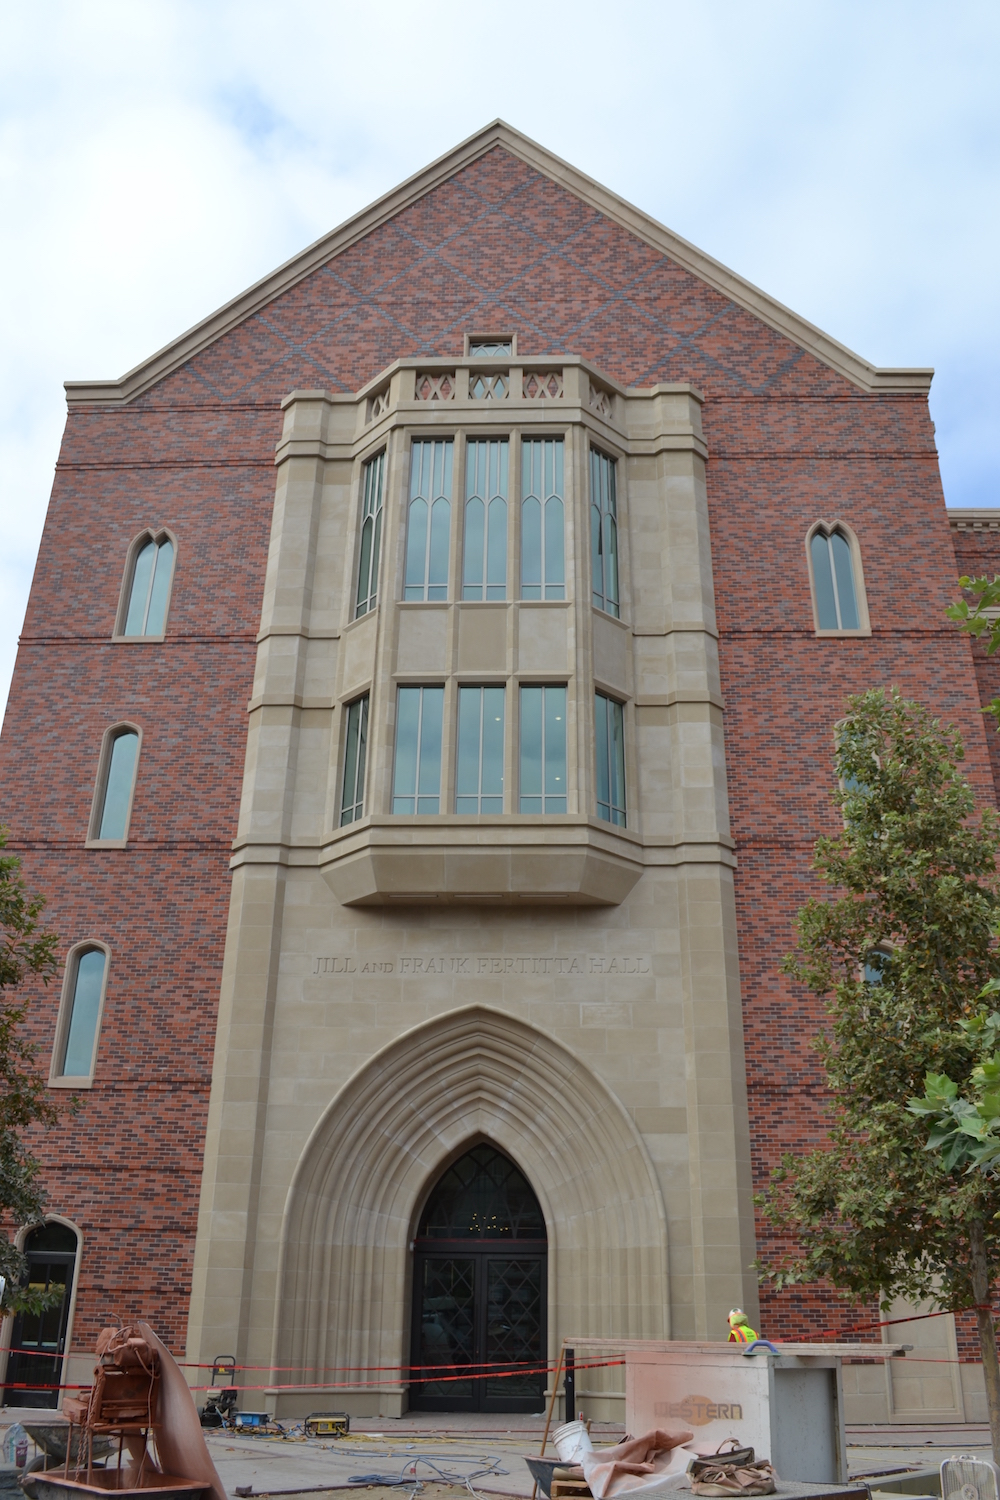 Jill and Frank Fertitta Hall, Marshall School of Business, USC | Cast Stone Grand Entry that is more than Five Stories High | Custom Engineering, Fabrication